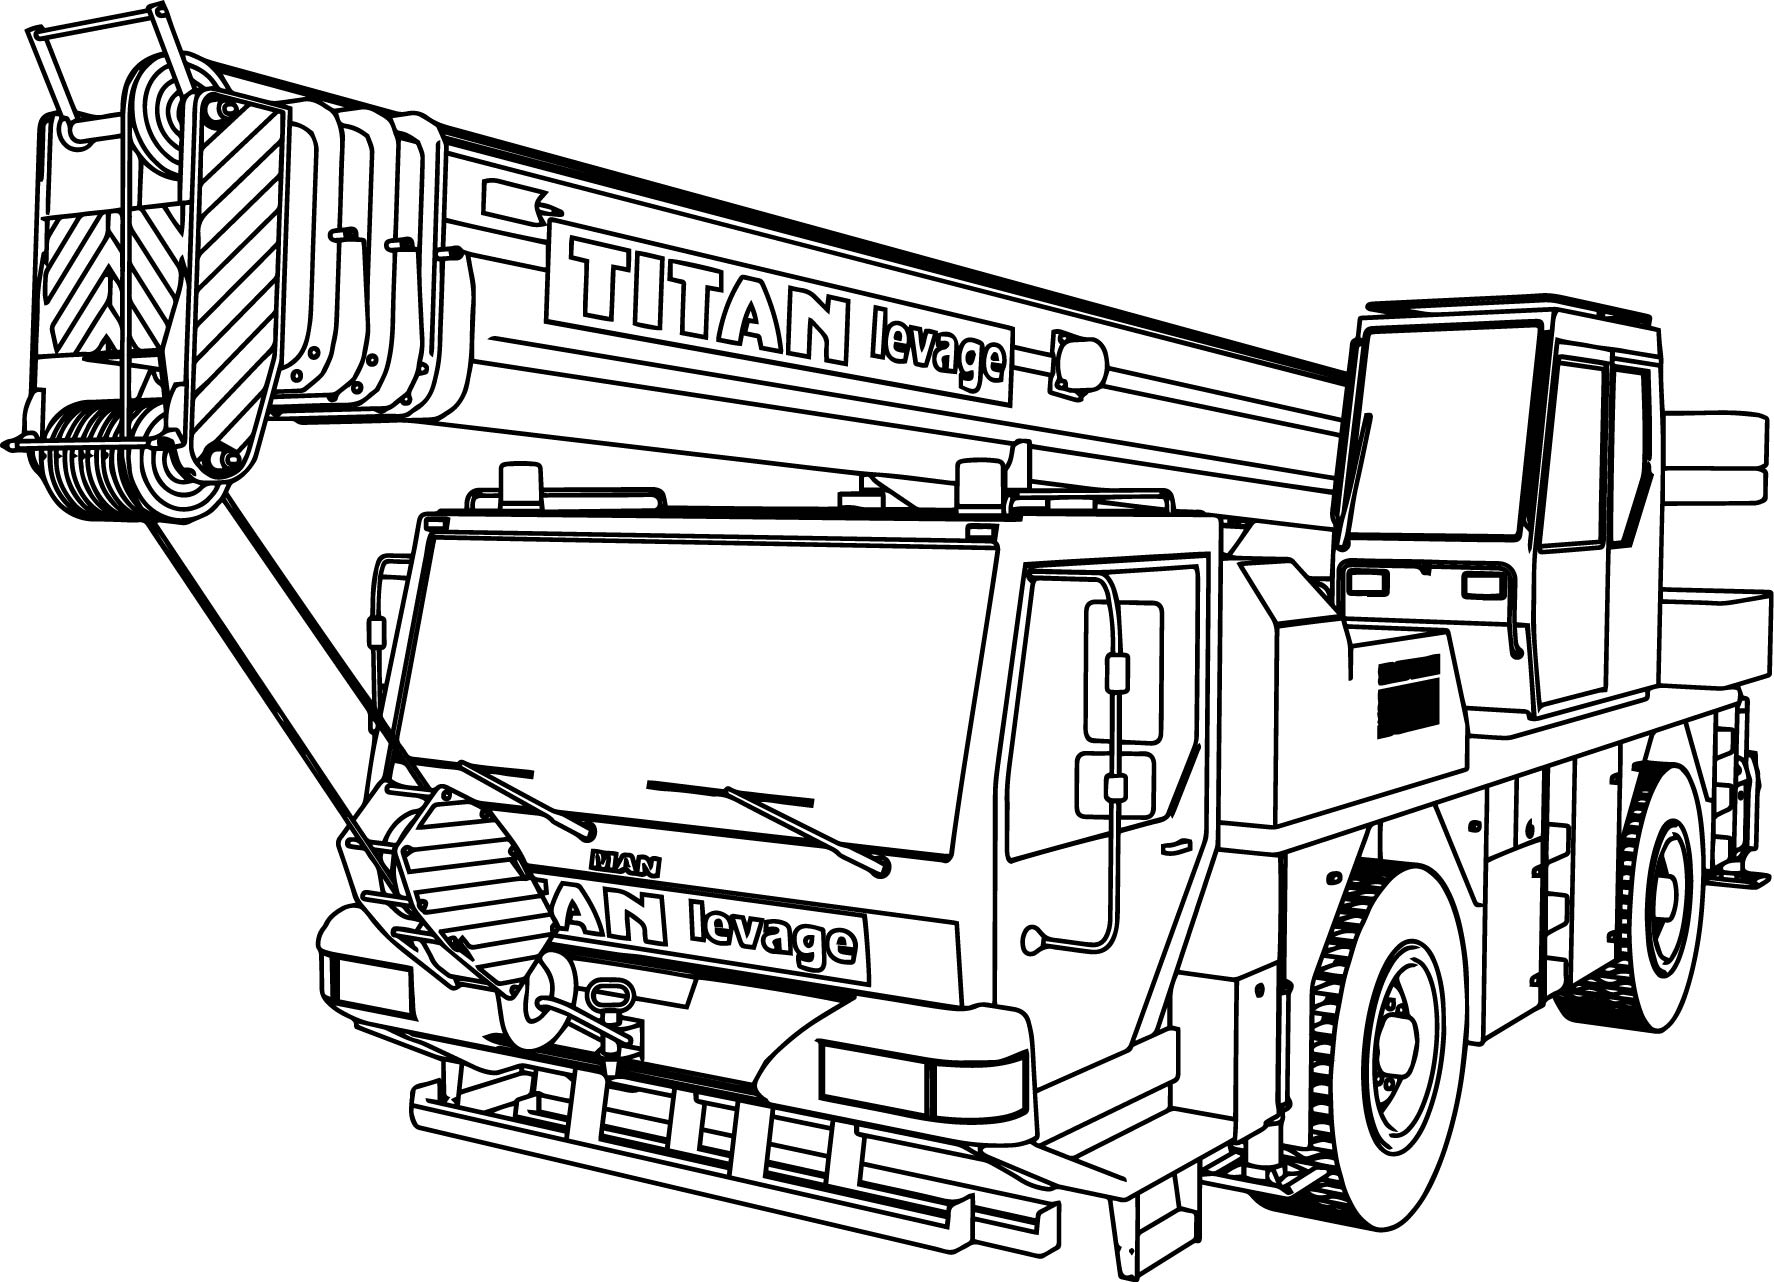 man titan levage ltm 1160 pull truck coloring page wecoloringpage